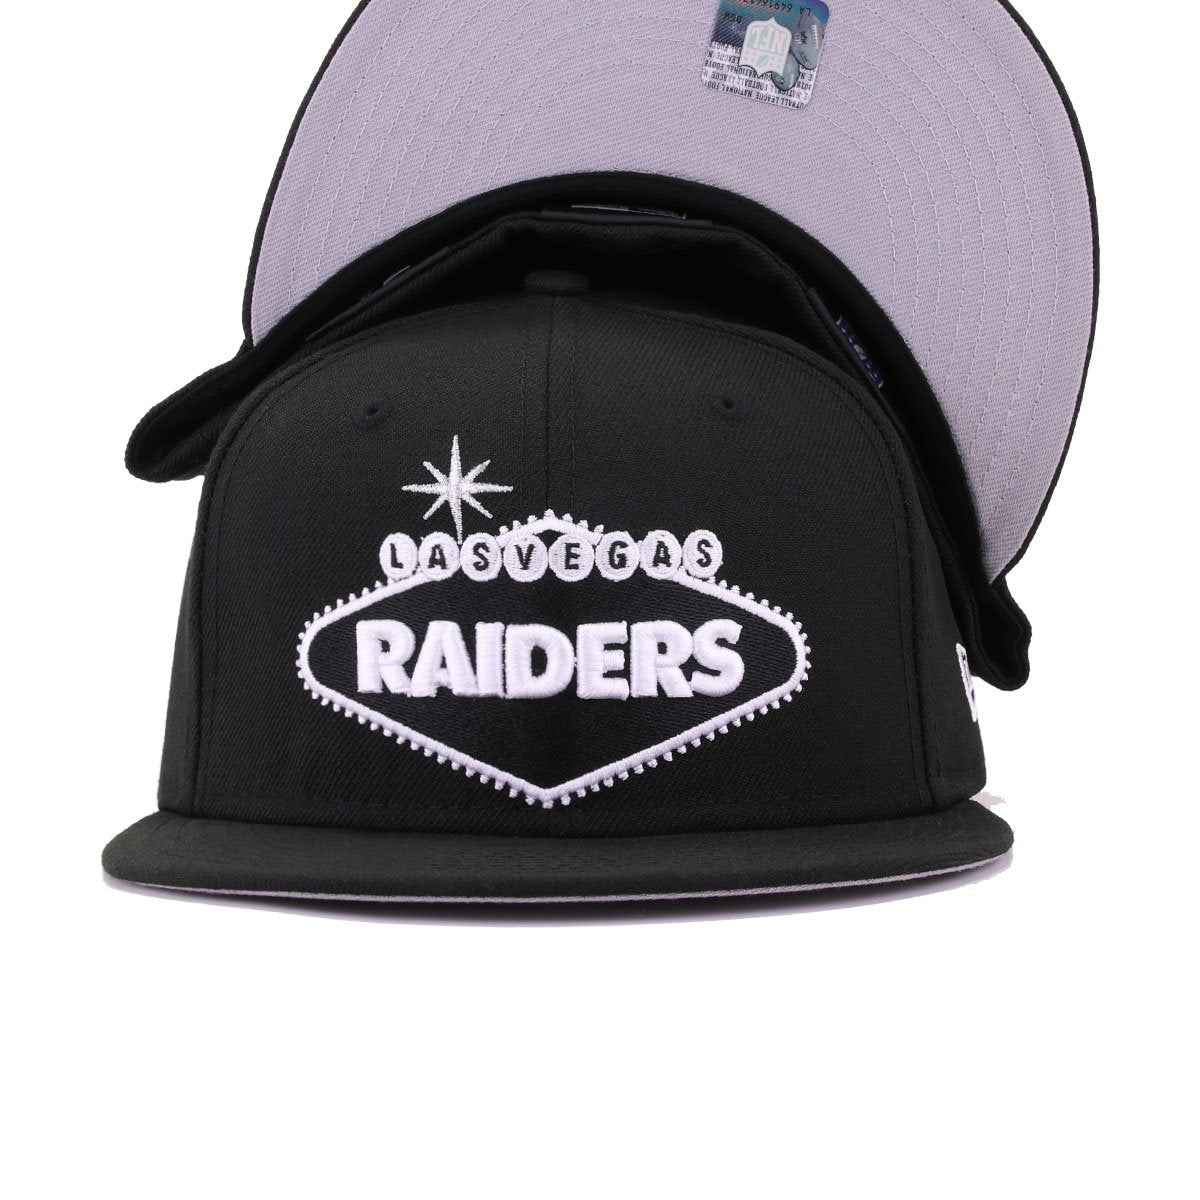 Las Vegas Raiders Black Welcome to Las Vegas New Era 59Fifty Fitted